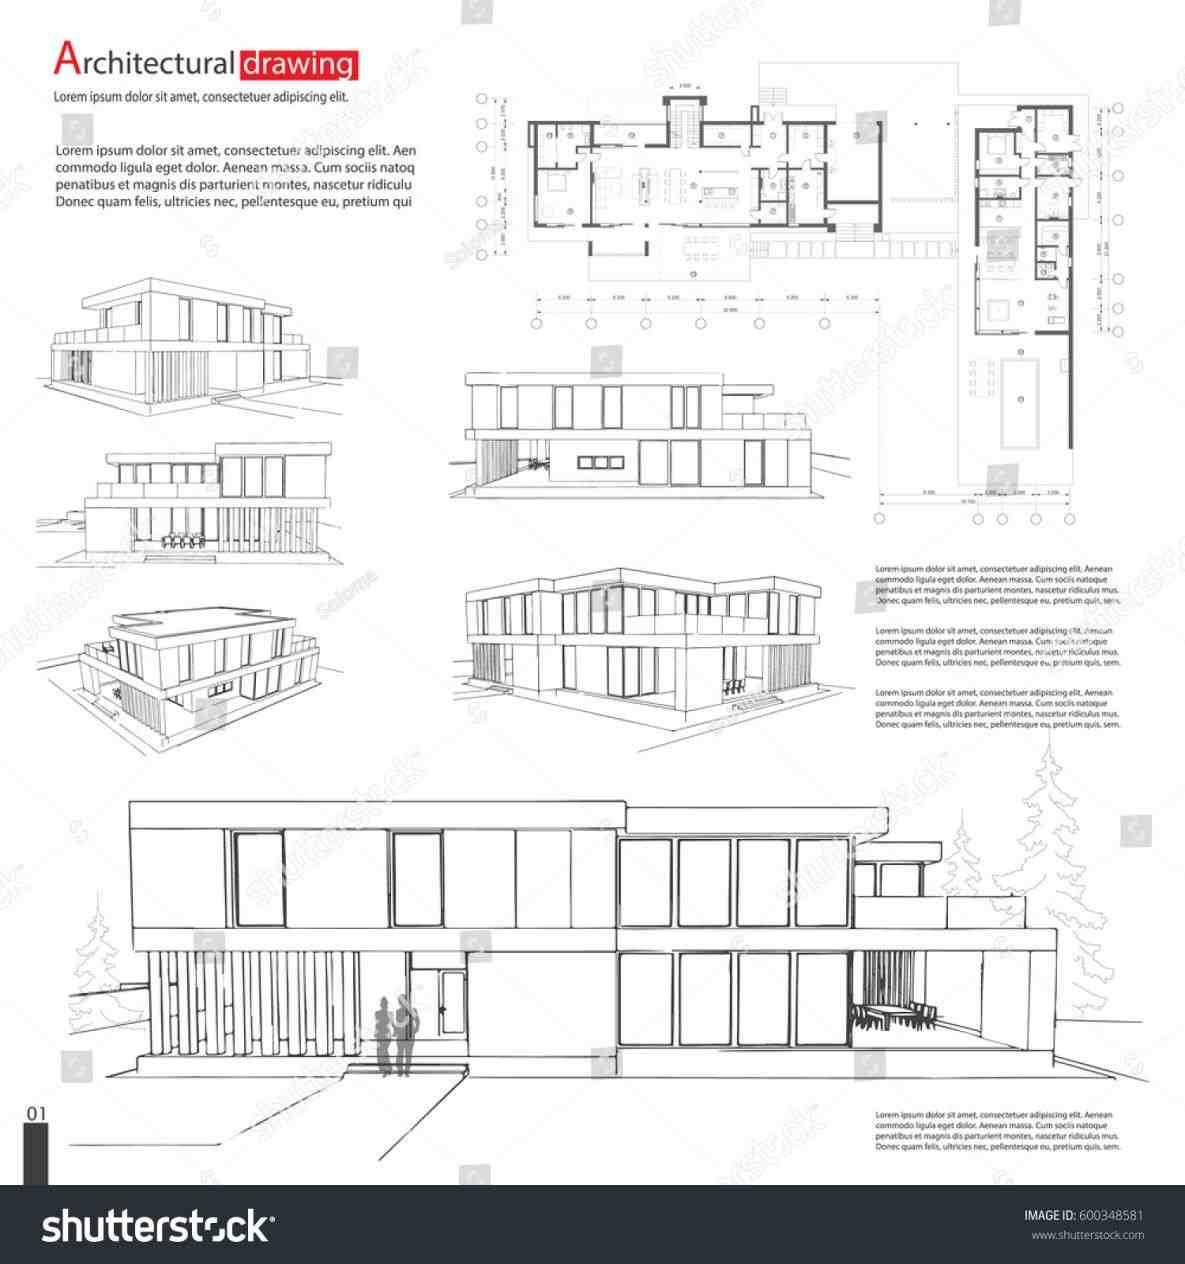 Autocad Architectural Drawing Templates